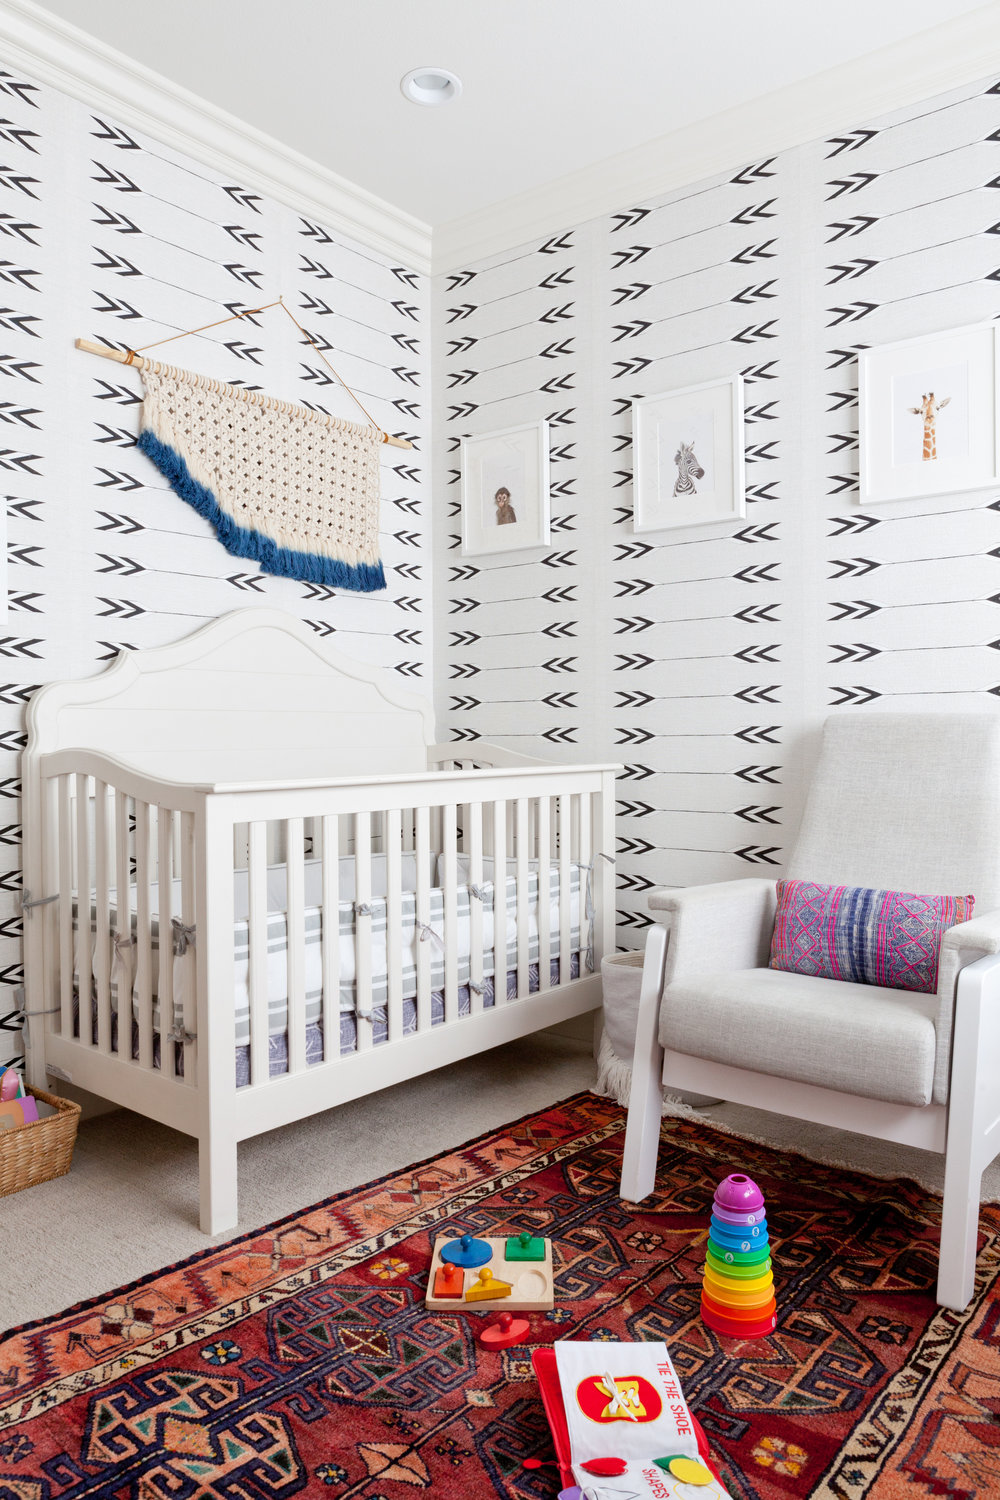 Cavern Home Tapestry  wallpaper in Playa Vista nursery